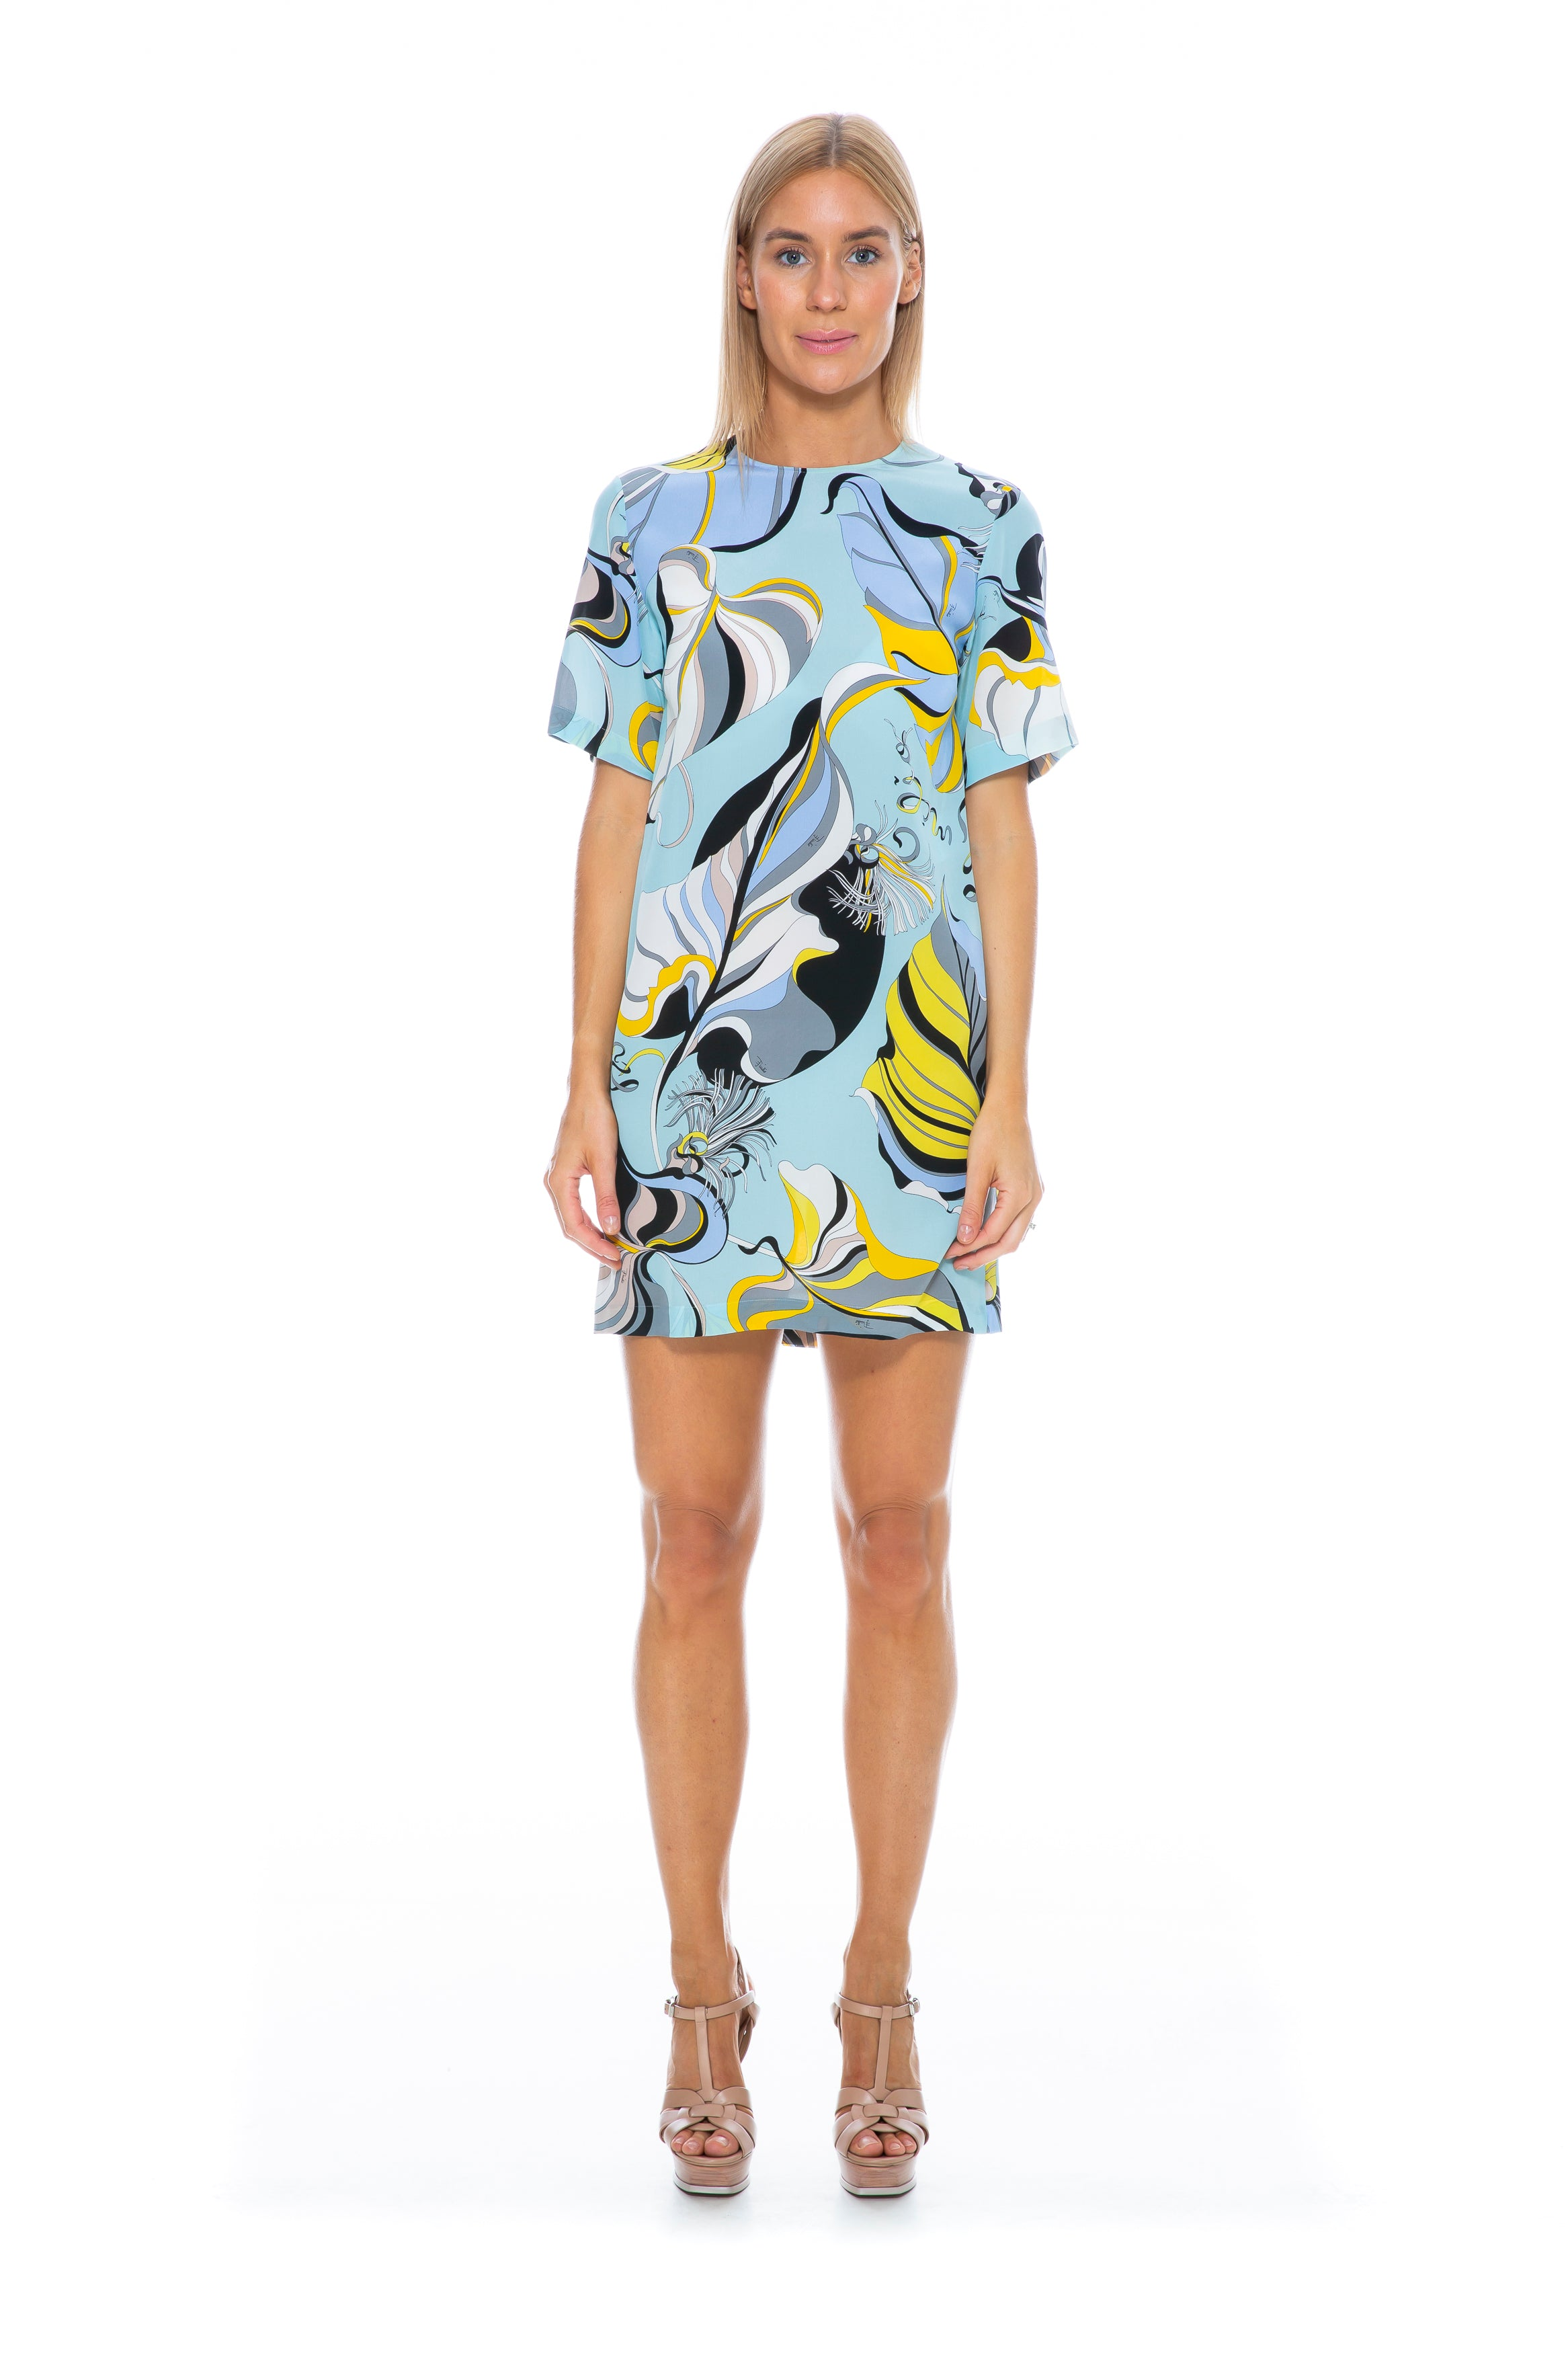 PALE BLUE SHORT SLEEVE PRINTED DRESS